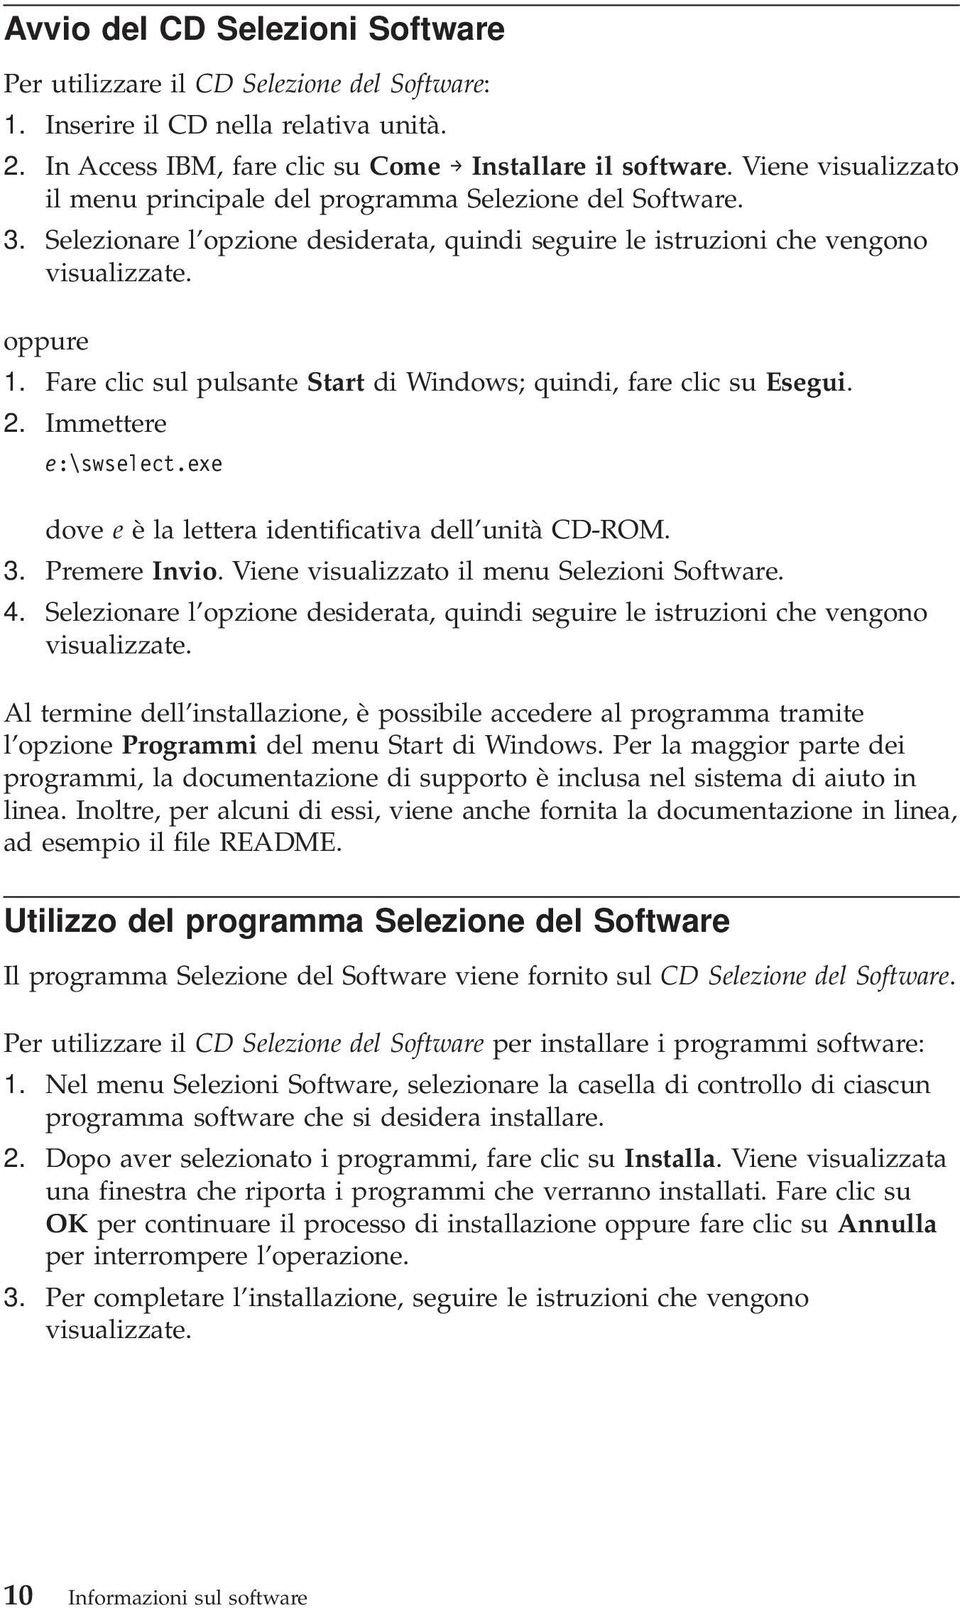 Fare clic sul pulsante Start di Windows; quindi, fare clic su Esegui. 2. Immettere e:\swselect.exe dove e è la lettera identificativa dell unità CD-ROM. 3. Premere Invio.